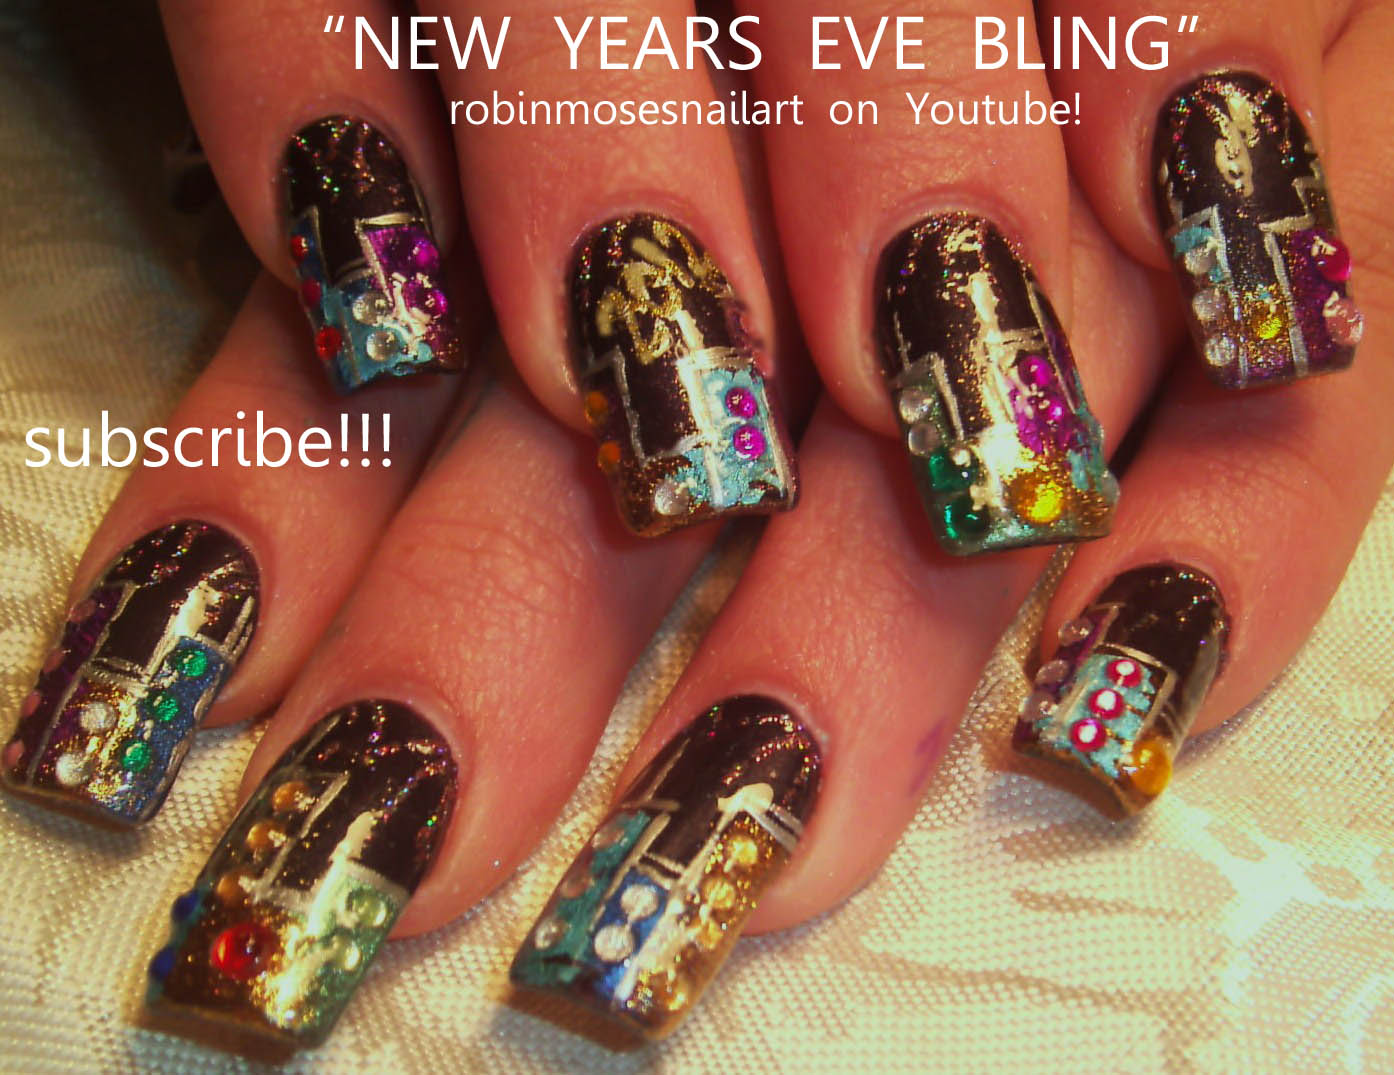 Robin moses nail art new york nails new year 2012 new year new york nails new year 2012 new year nails easy new year nails fashion trends 2012 essie dive bar polish nyc chinatown nyc new years nails prinsesfo Choice Image